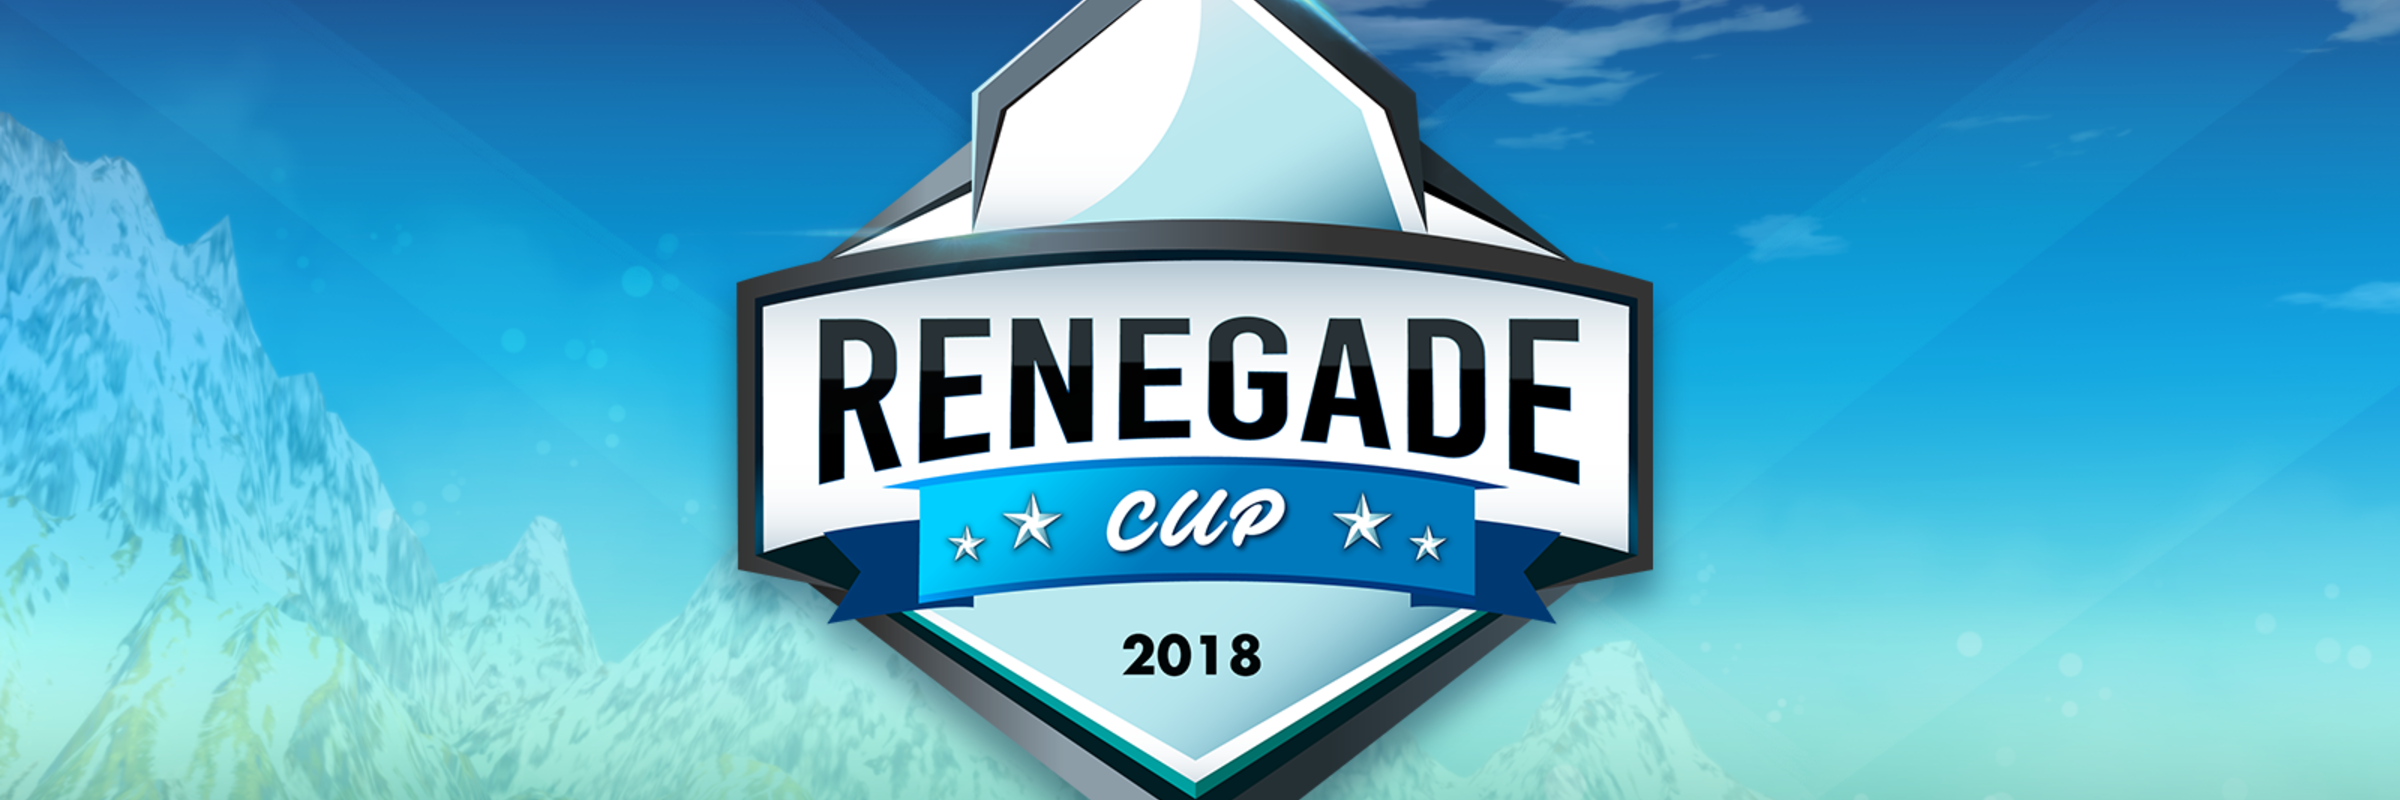 EU Renegade Cup Finals: Teams to Watch Image